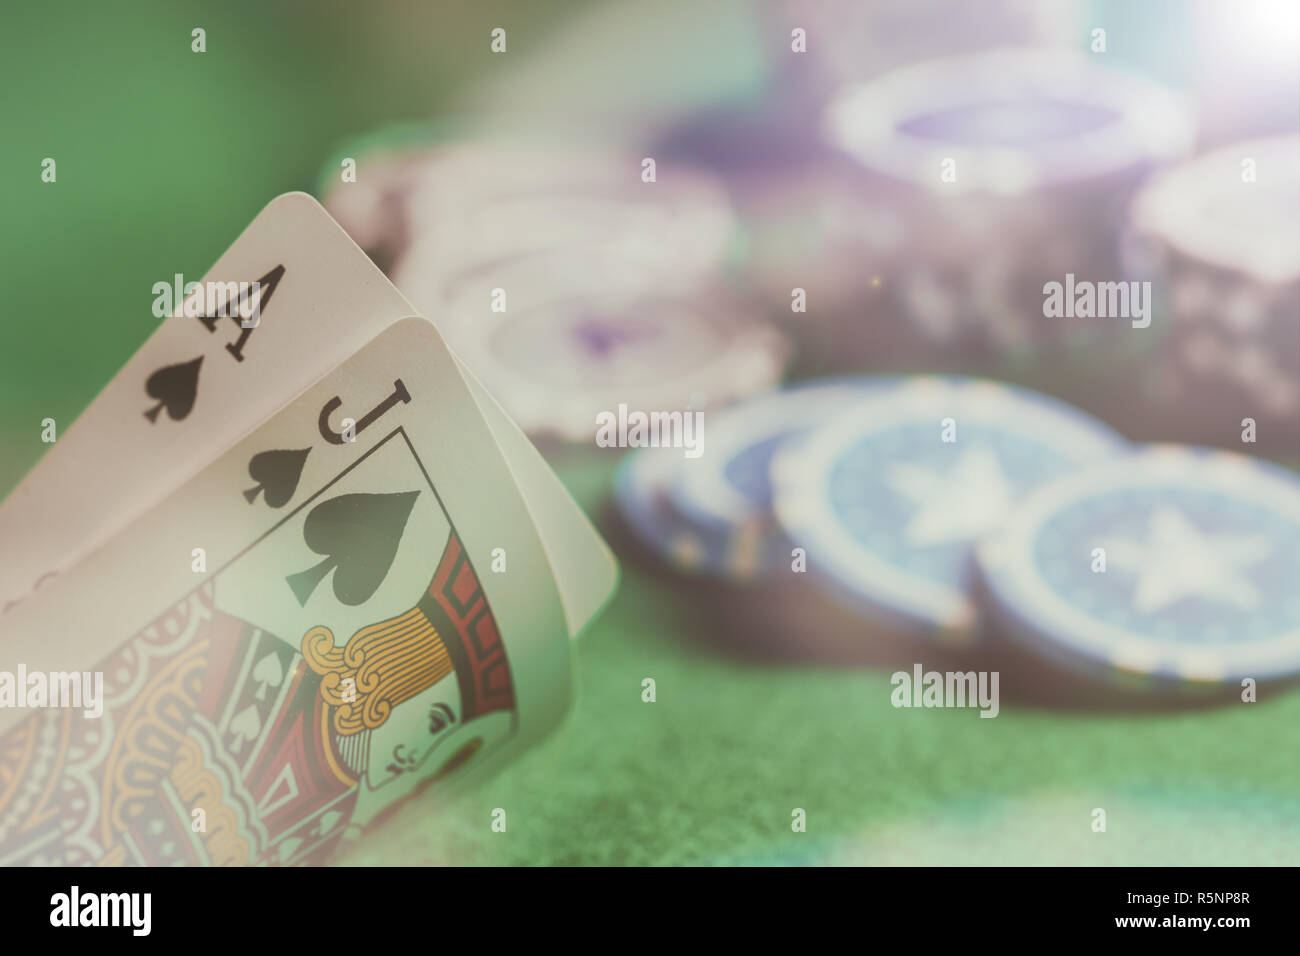 Casino, gambling concept. Blackjack and poker chips on green felt abstract background - Stock Image